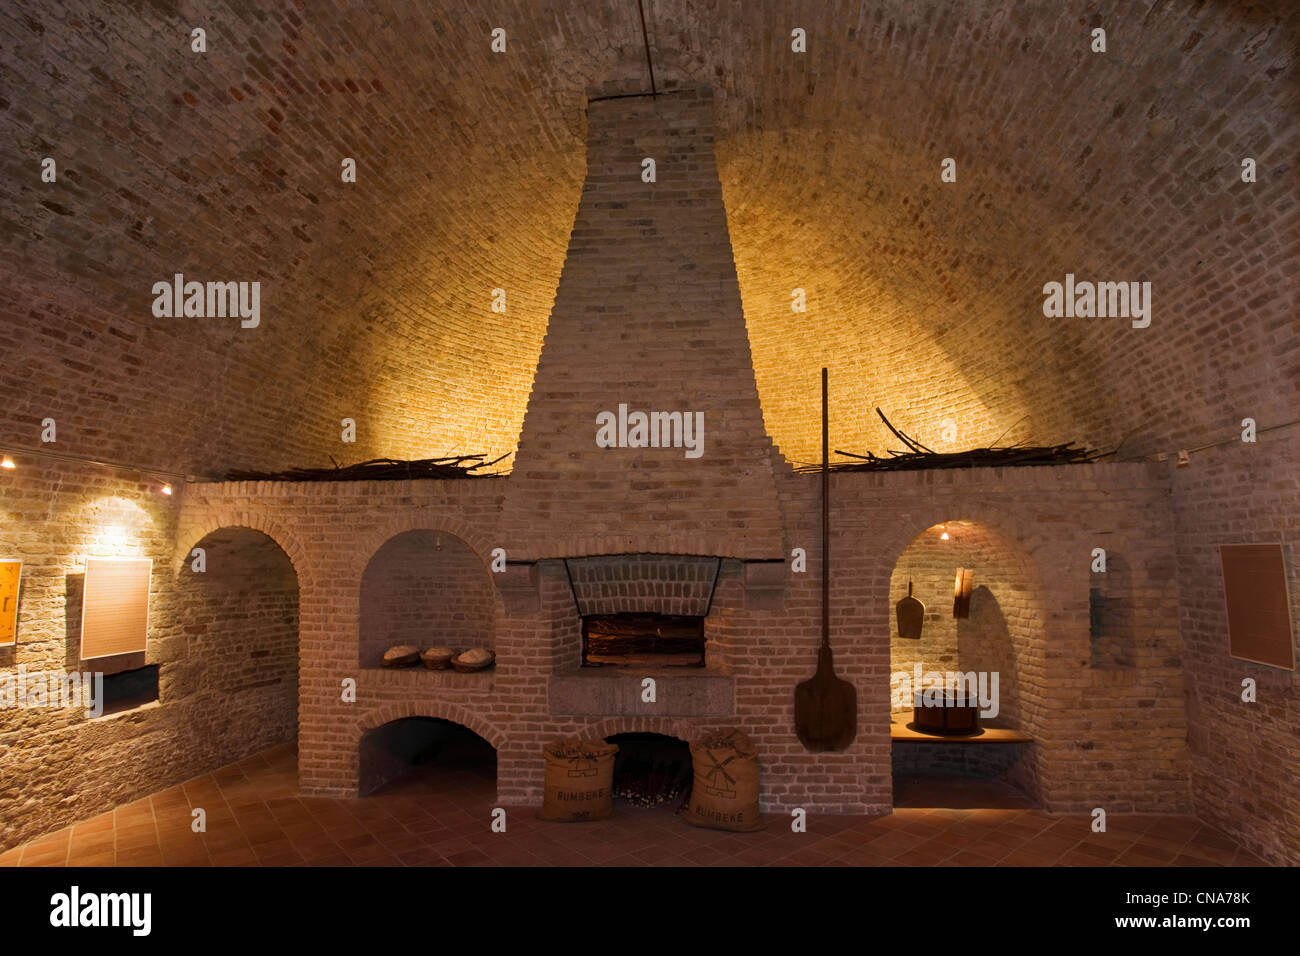 France Nord Gravelines Arsenal Chateau The Bread Oven In An